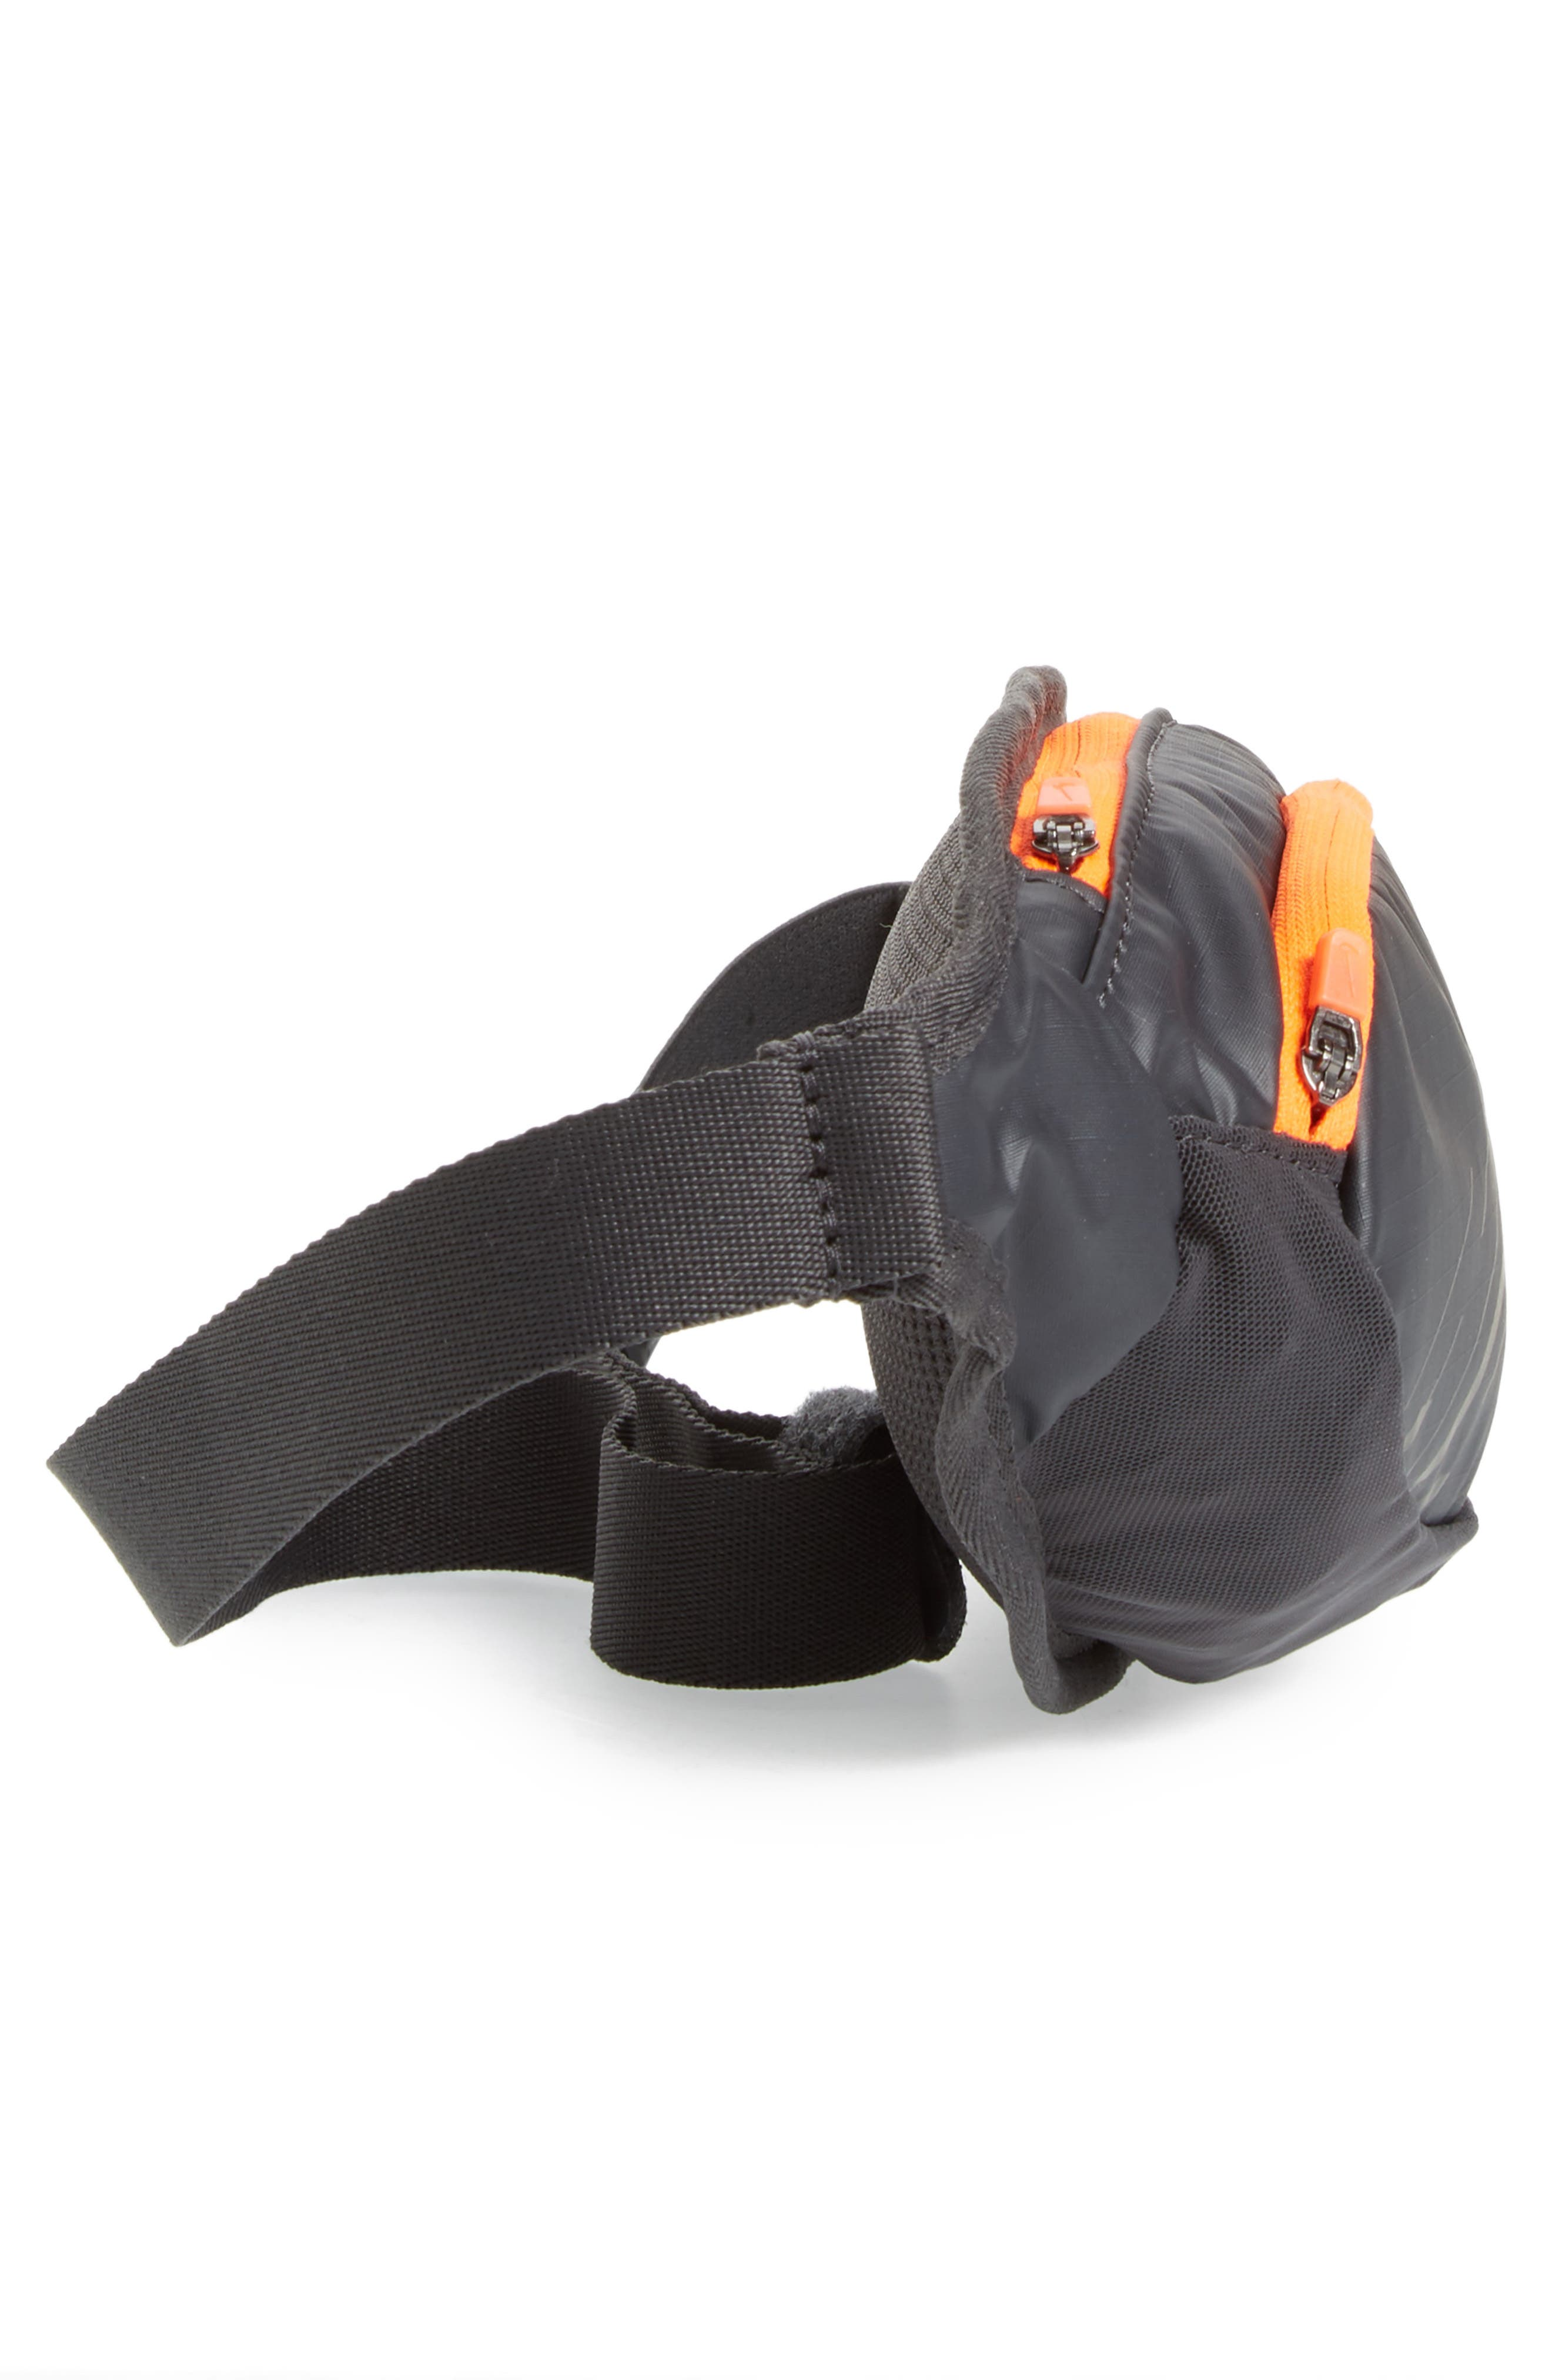 Large Capacity Hip Pack,                             Alternate thumbnail 3, color,                             Anthracite/ Black/ Silver